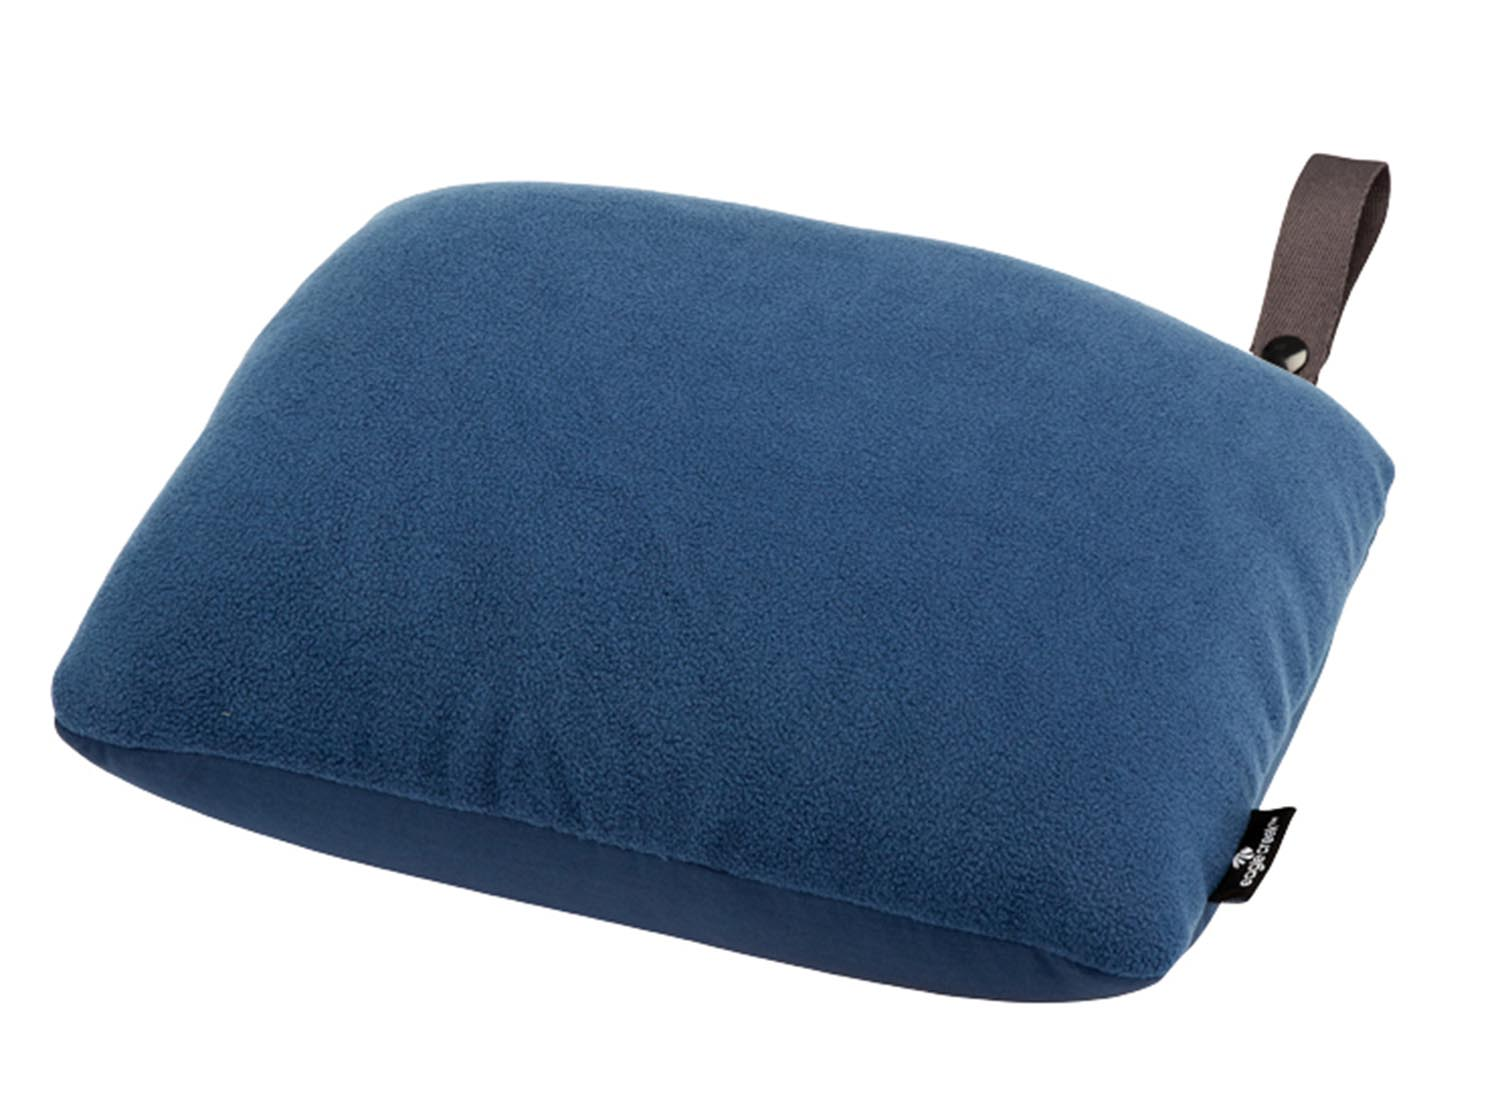 2-in-1 Travel Pillow Slate Blue-30